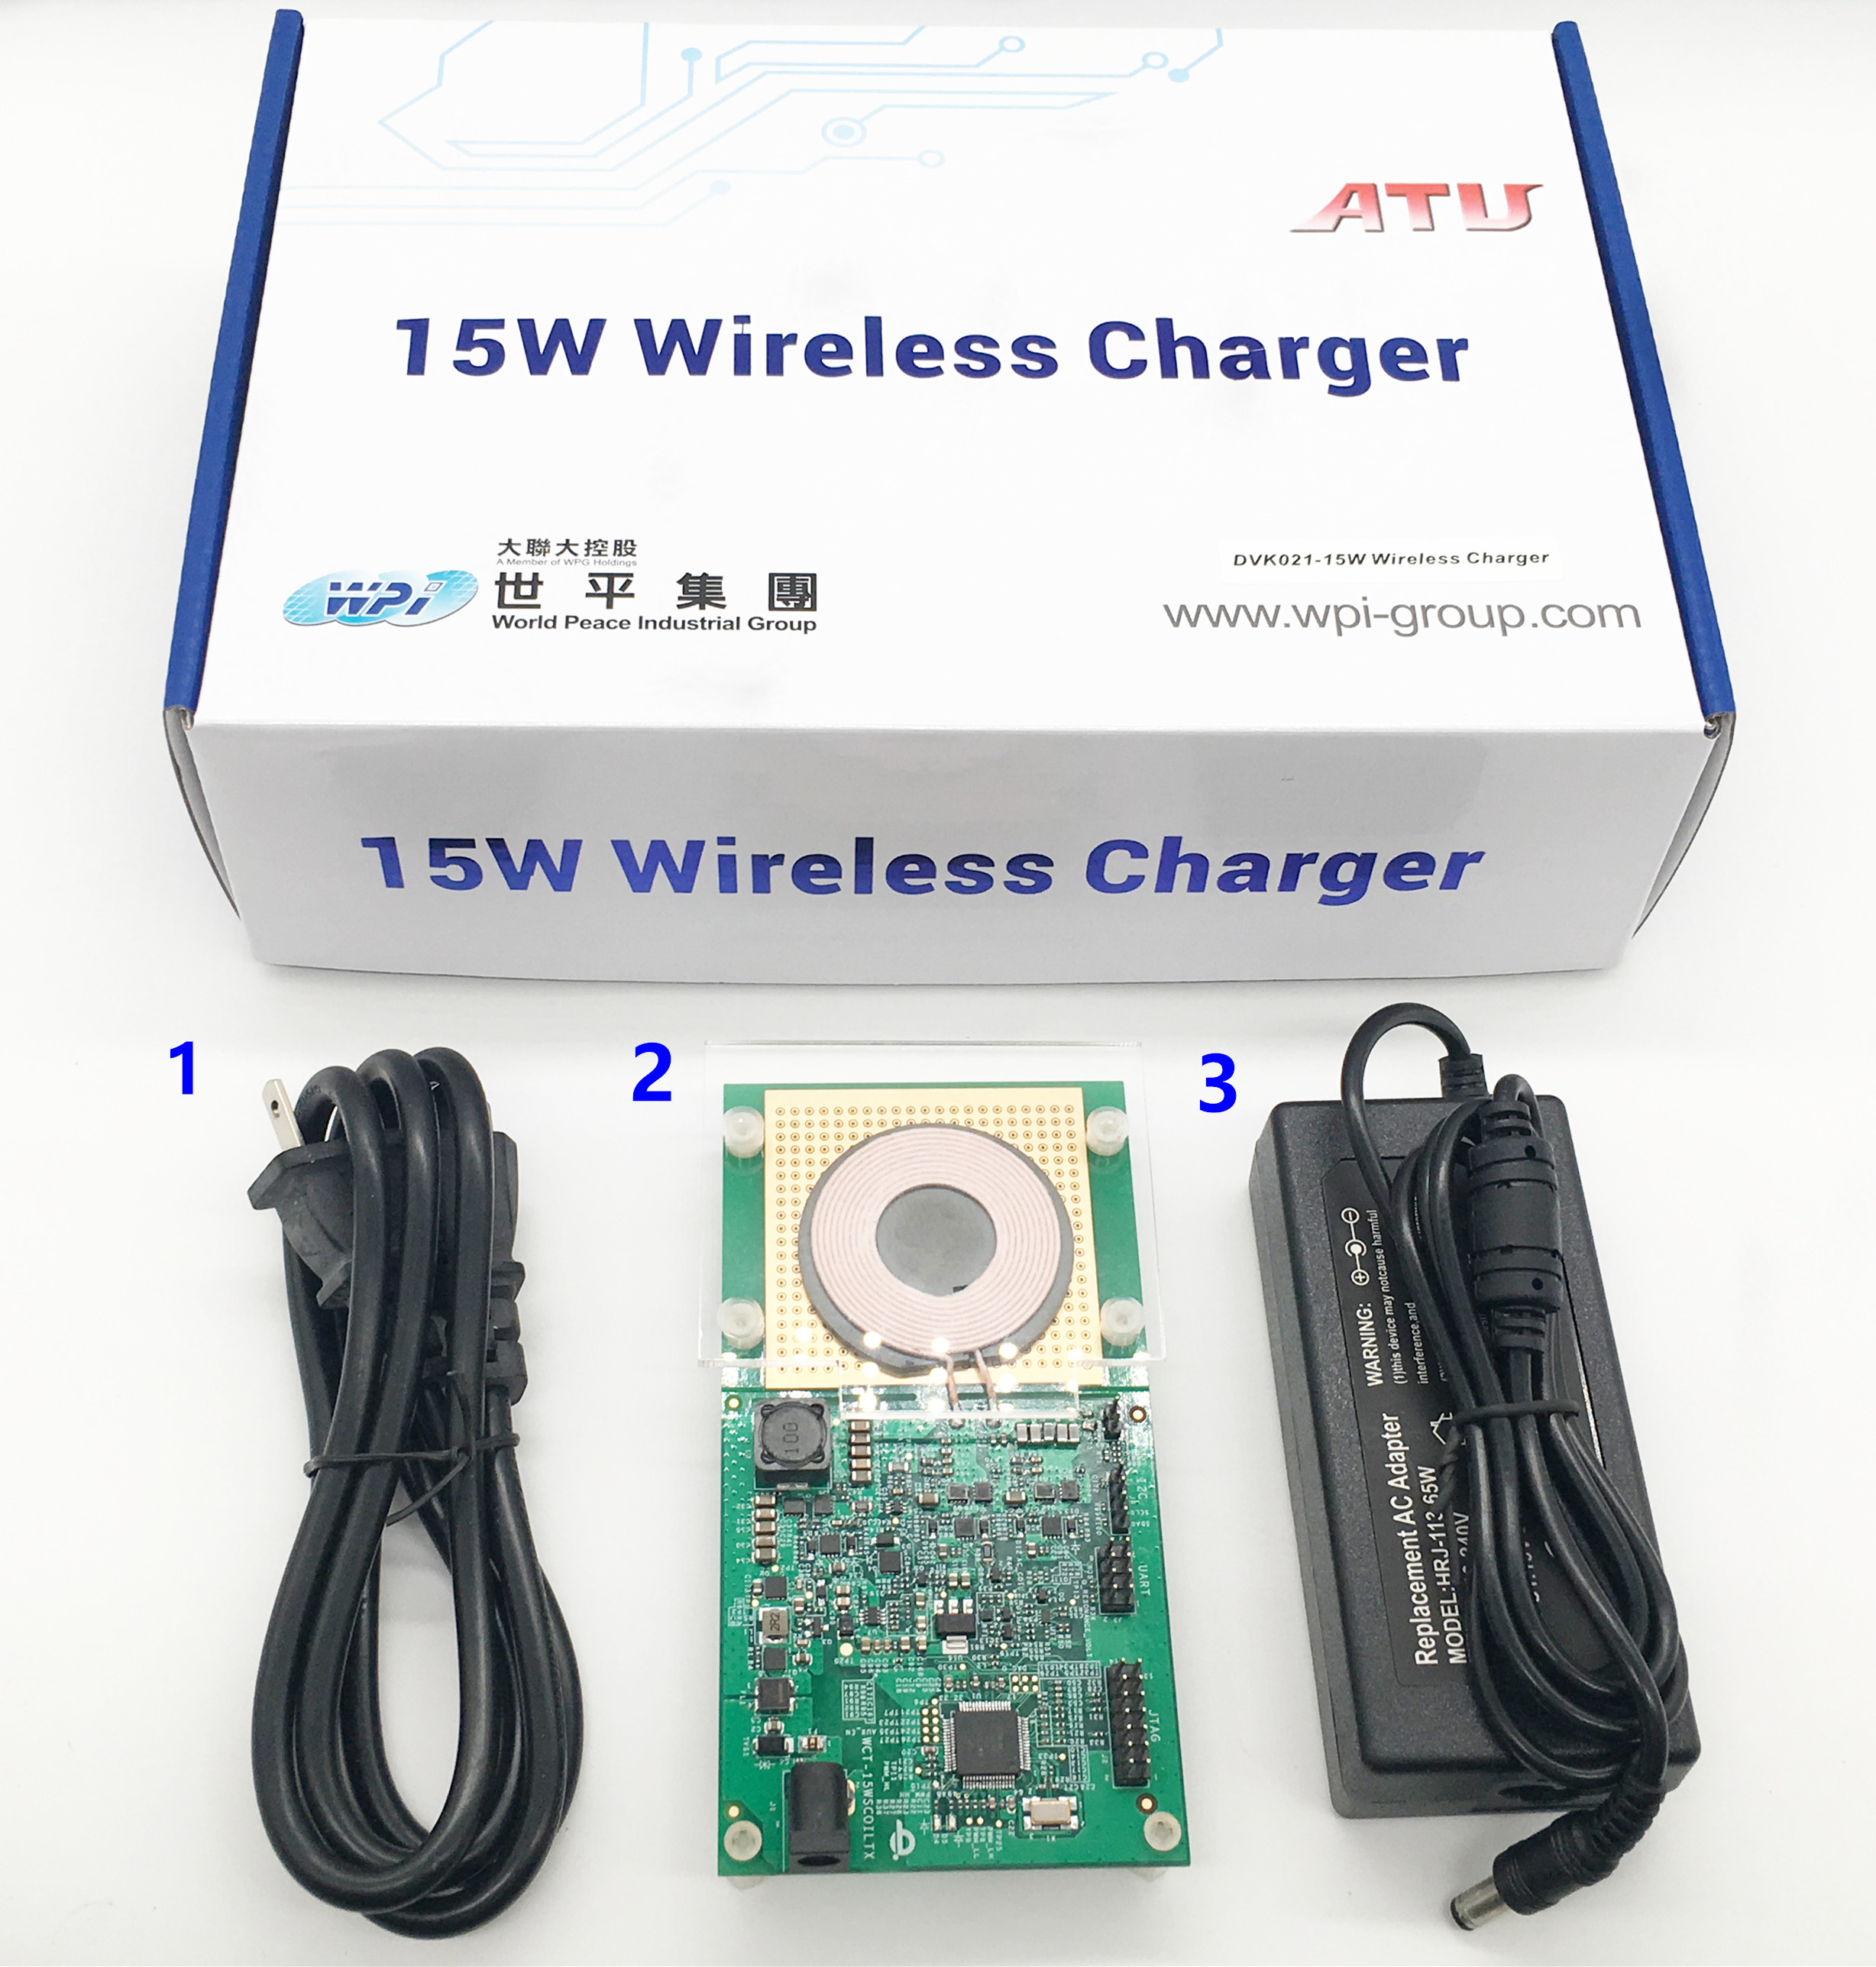 Brand : WPI<br/>Partno : DVK021-15W WIRELESS CHARGER